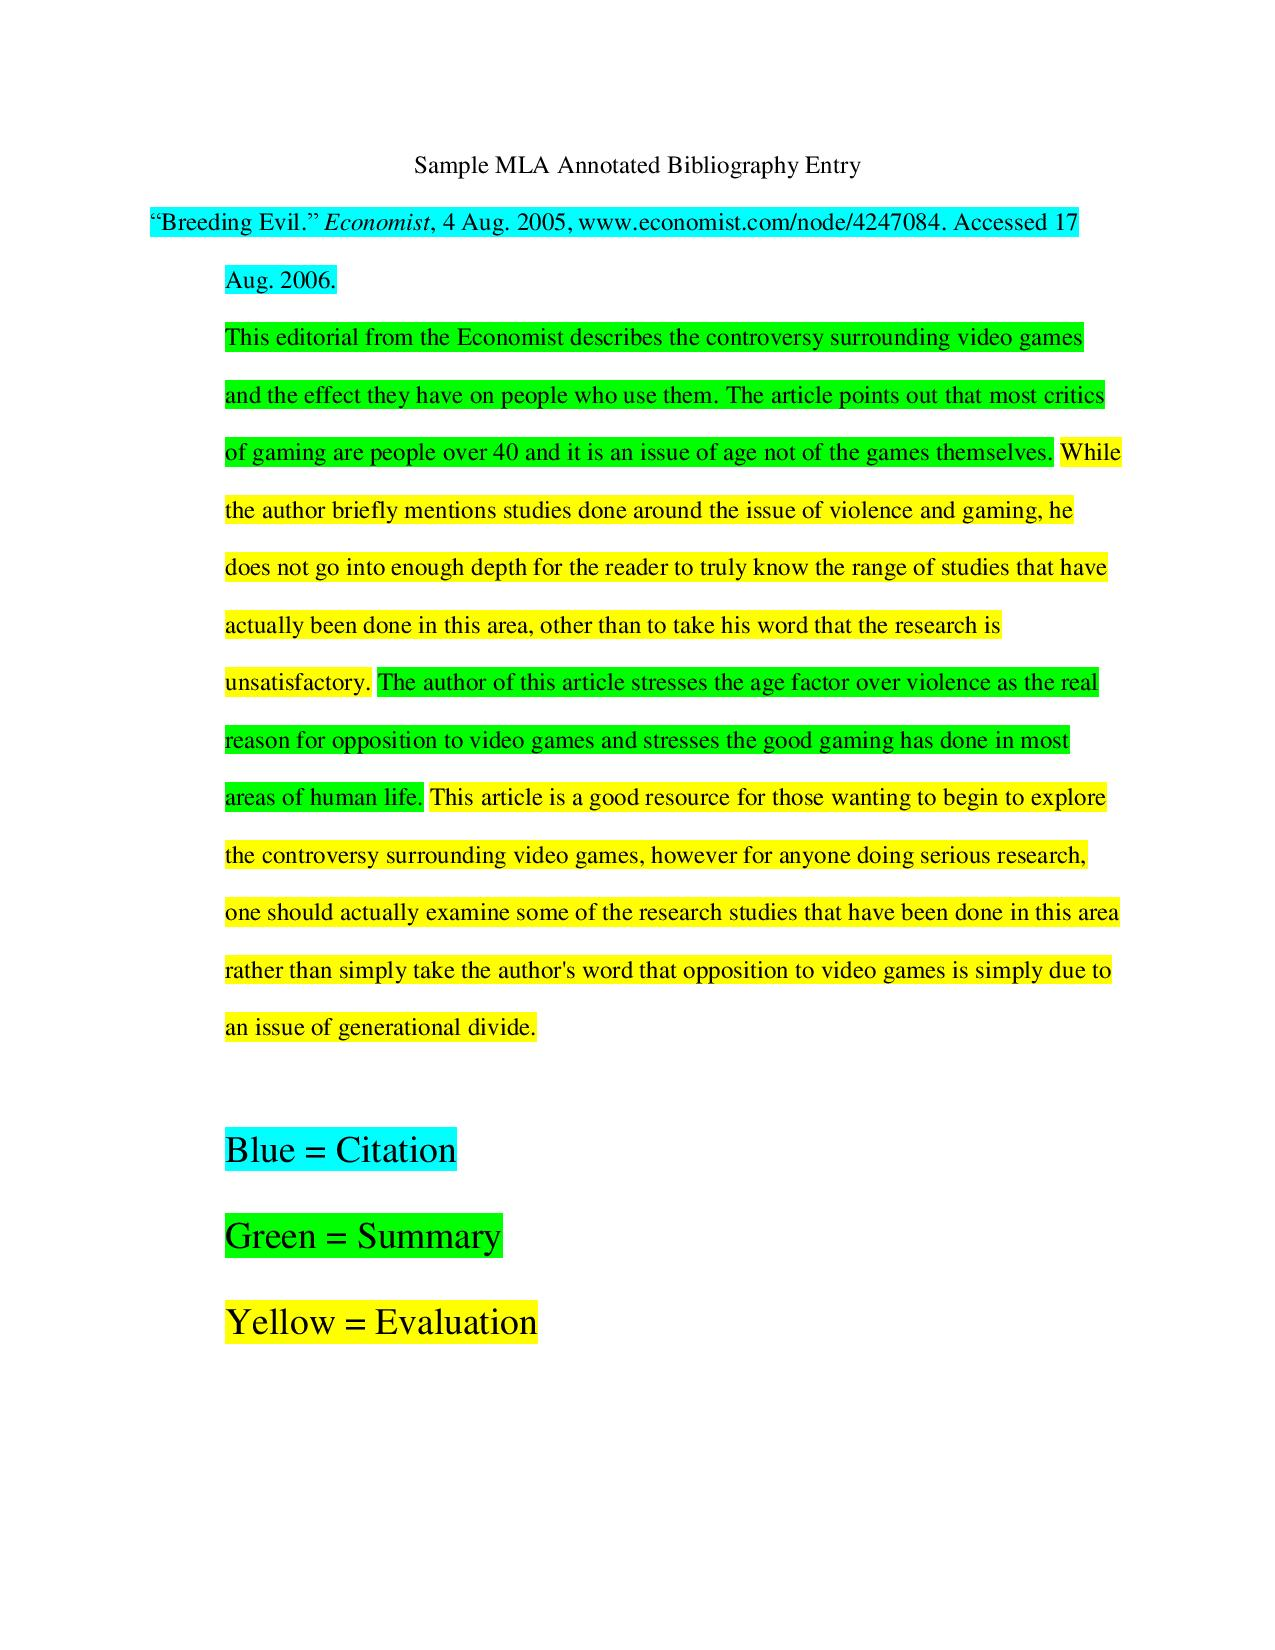 Chapter 1 Guidelines on How to Write a Bibliography in MLA Style